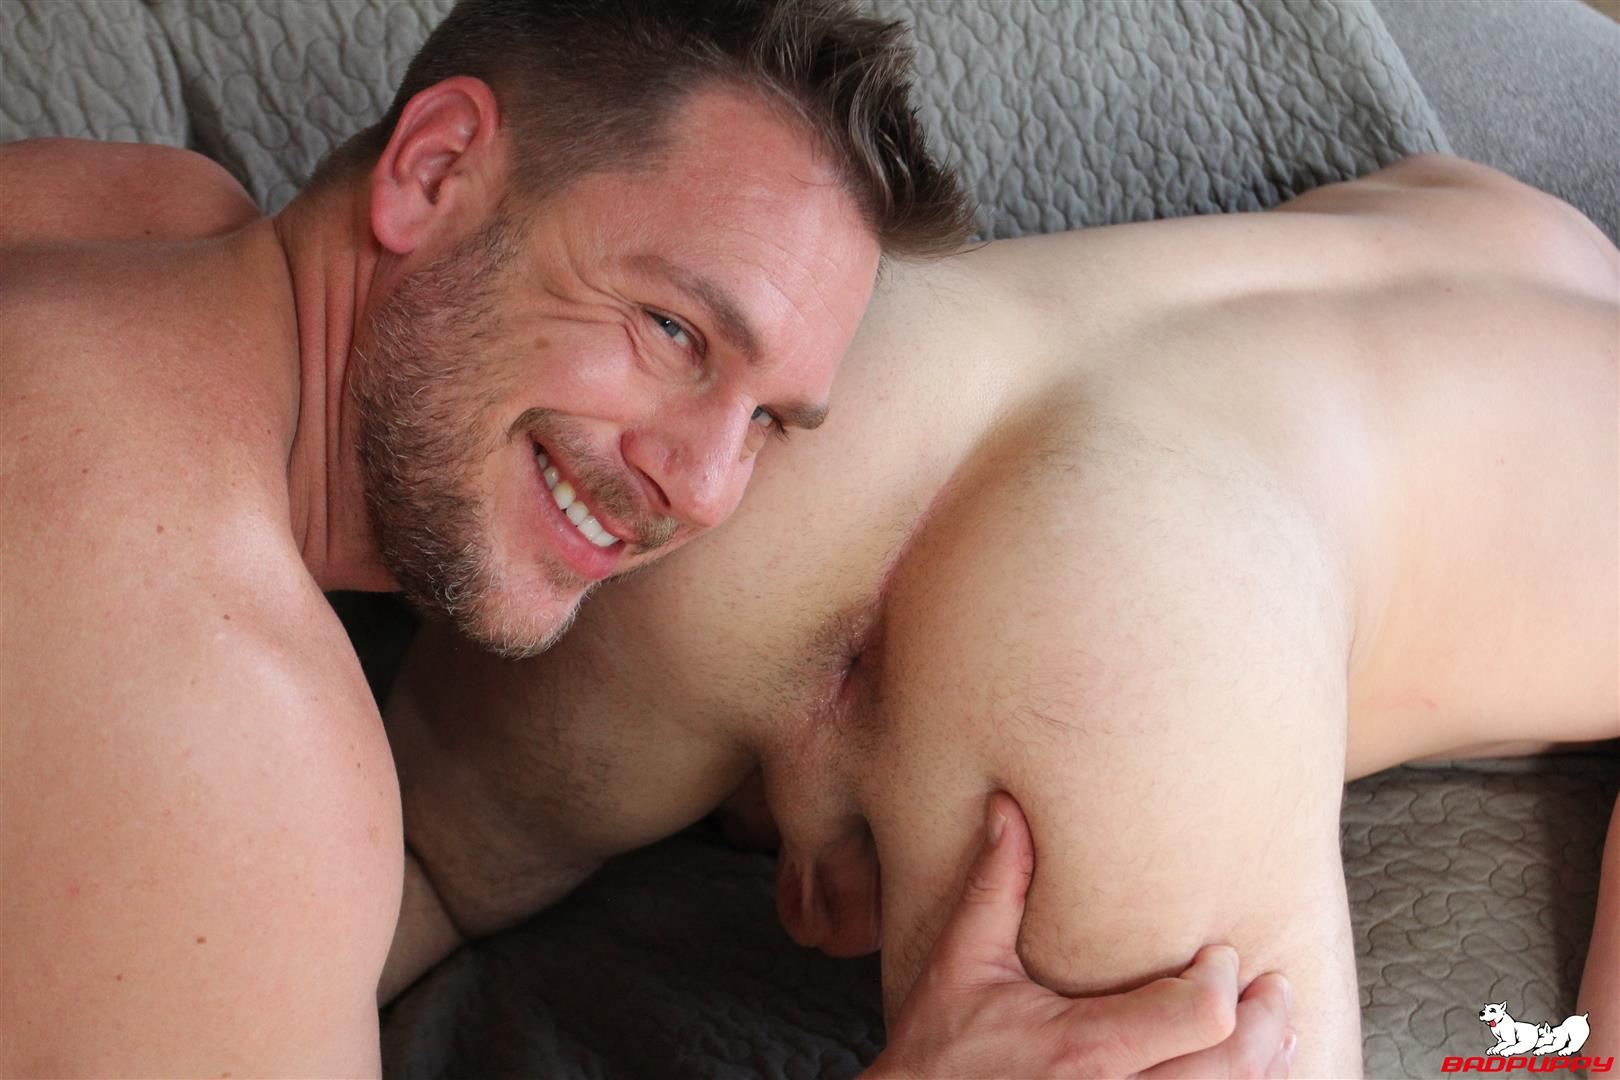 Badpuppy-Hans-Berlin-and-Ryan-Kroger-Big-Dick-Daddy-Barebacking-Boy-09 Big Dick Daddy Hans Berlin Barebacking Ryan Kroger